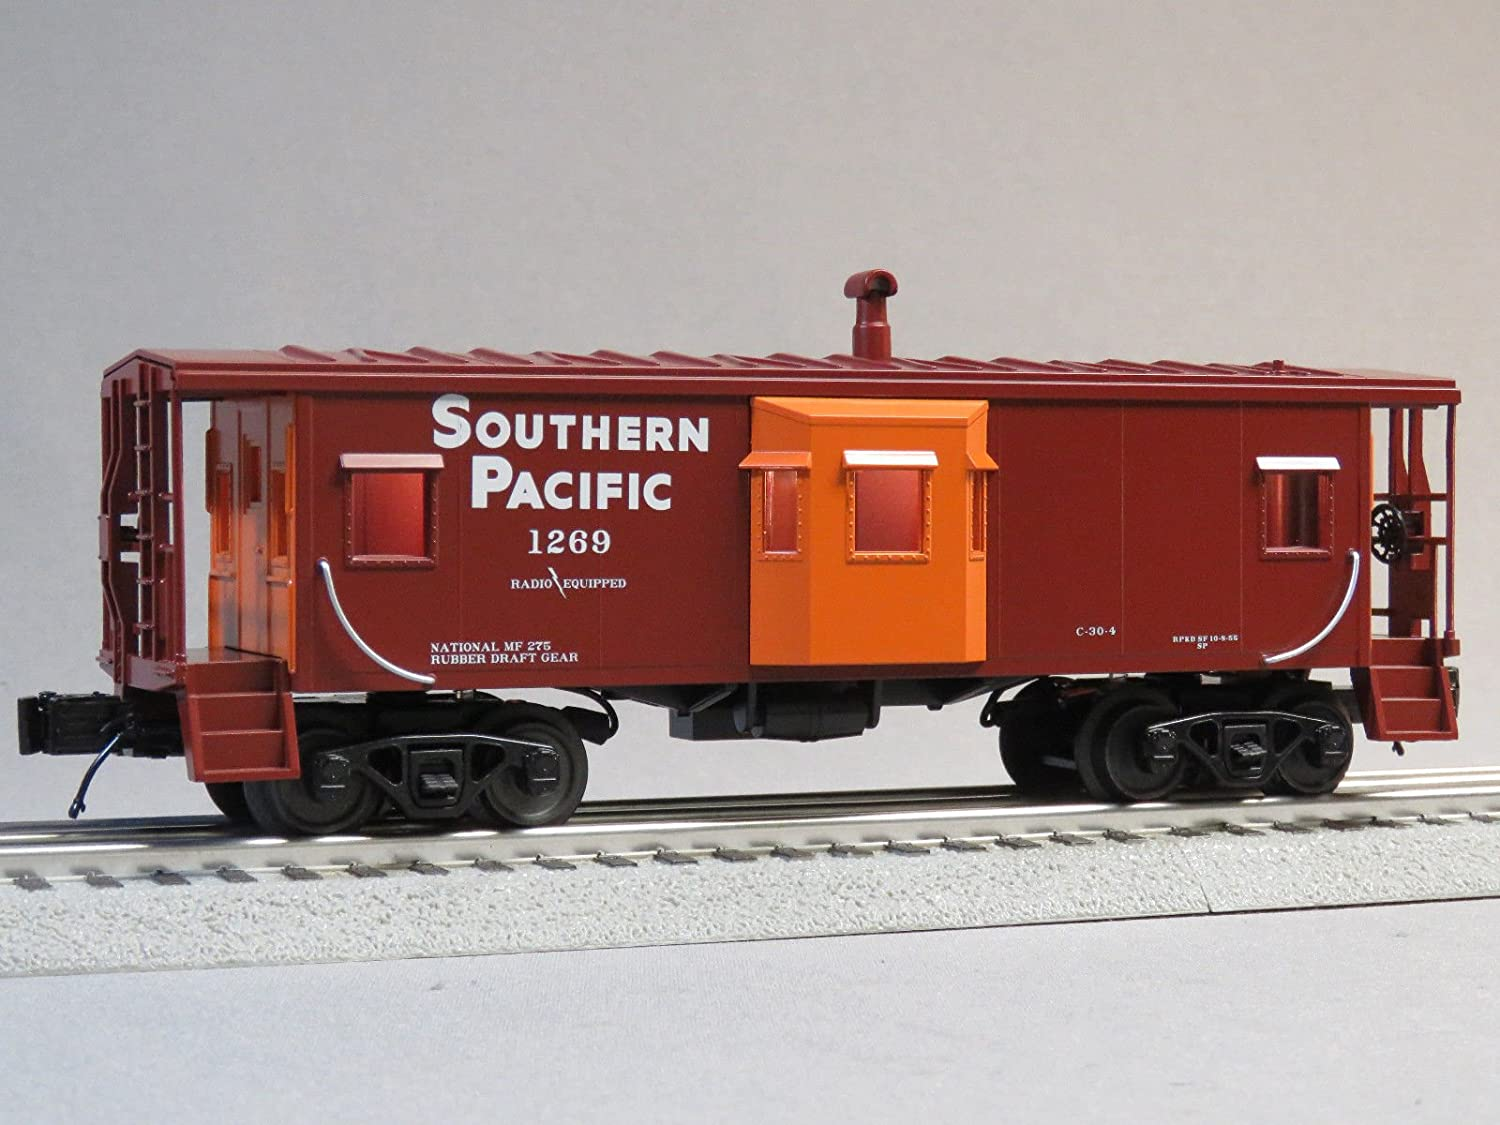 MTH Rail King Southern Pacific Caboose # 1269 Oゲージ B079LWZX7R